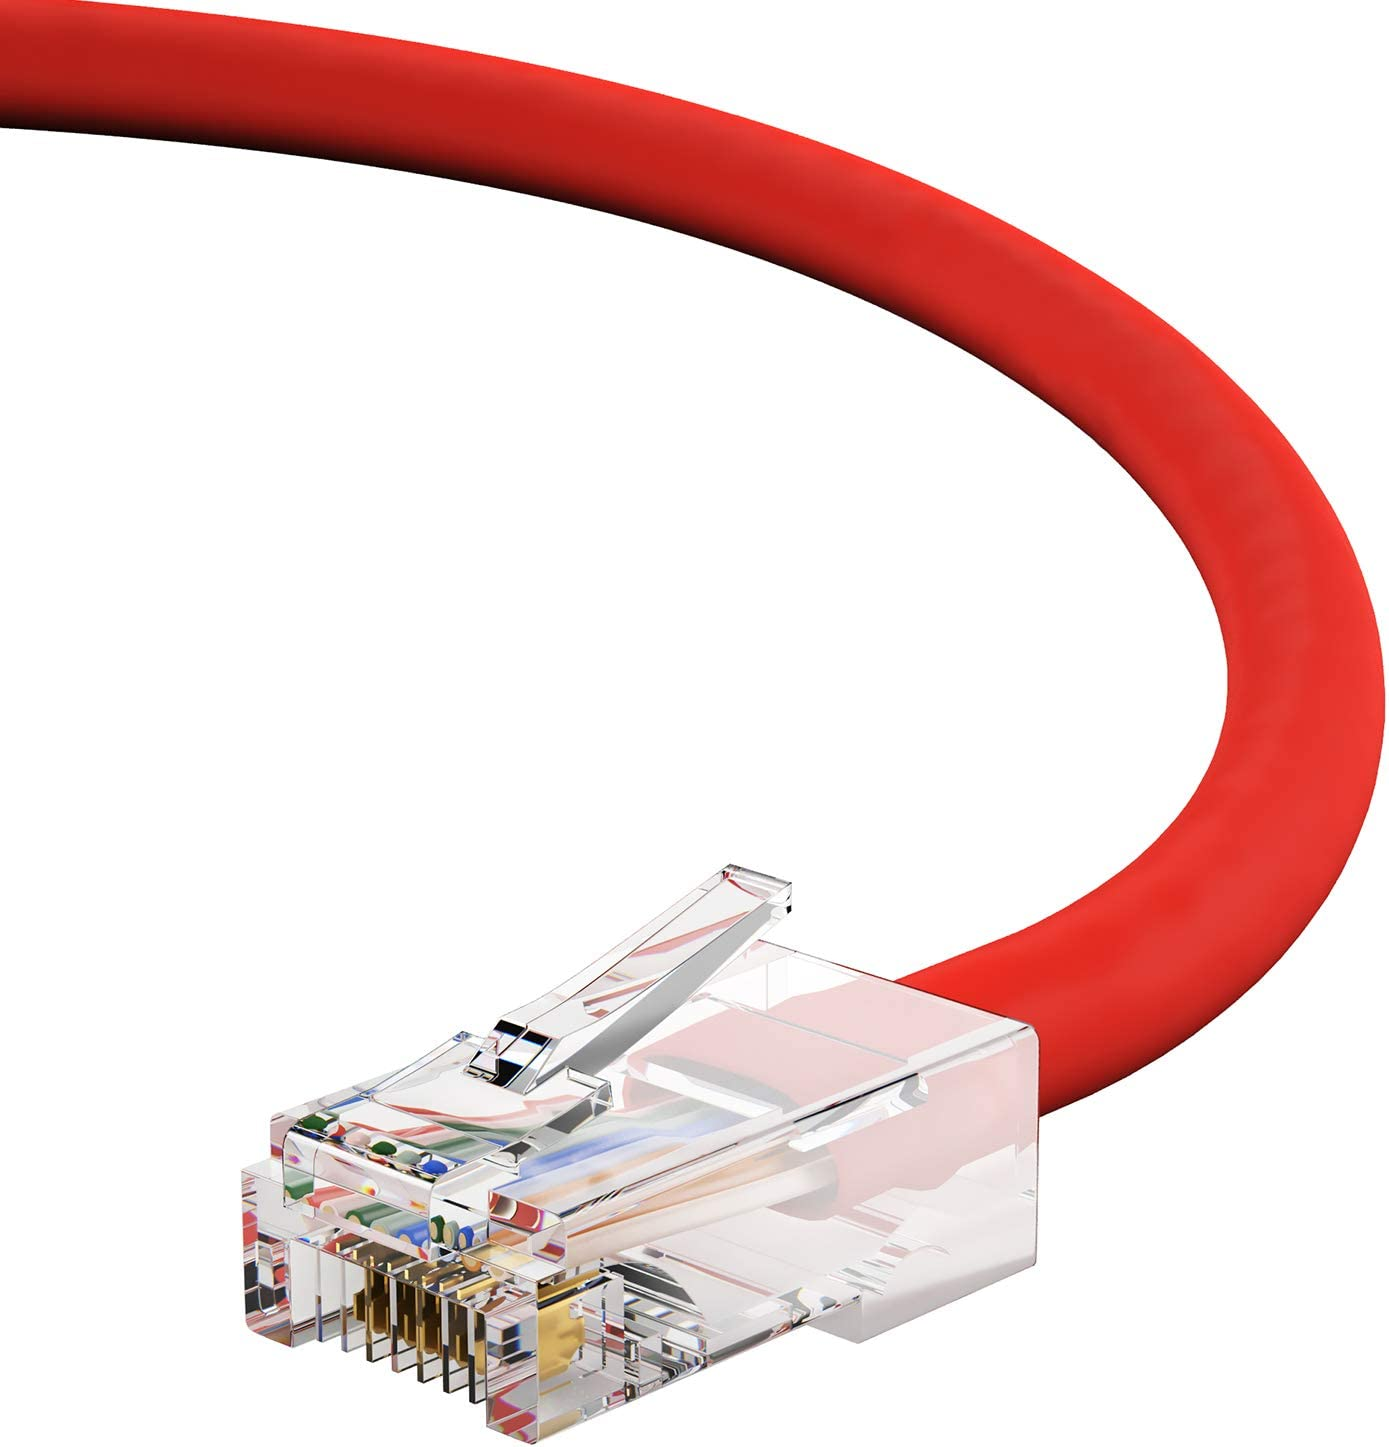 1Gigabit//Sec High Speed LAN Internet//Patch Cable 24AWG Network Cable with Gold Plated RJ45 Non-Booted Connector 350MHz 10-Pack - 7 Feet Red GOWOS Cat5e Ethernet Cable